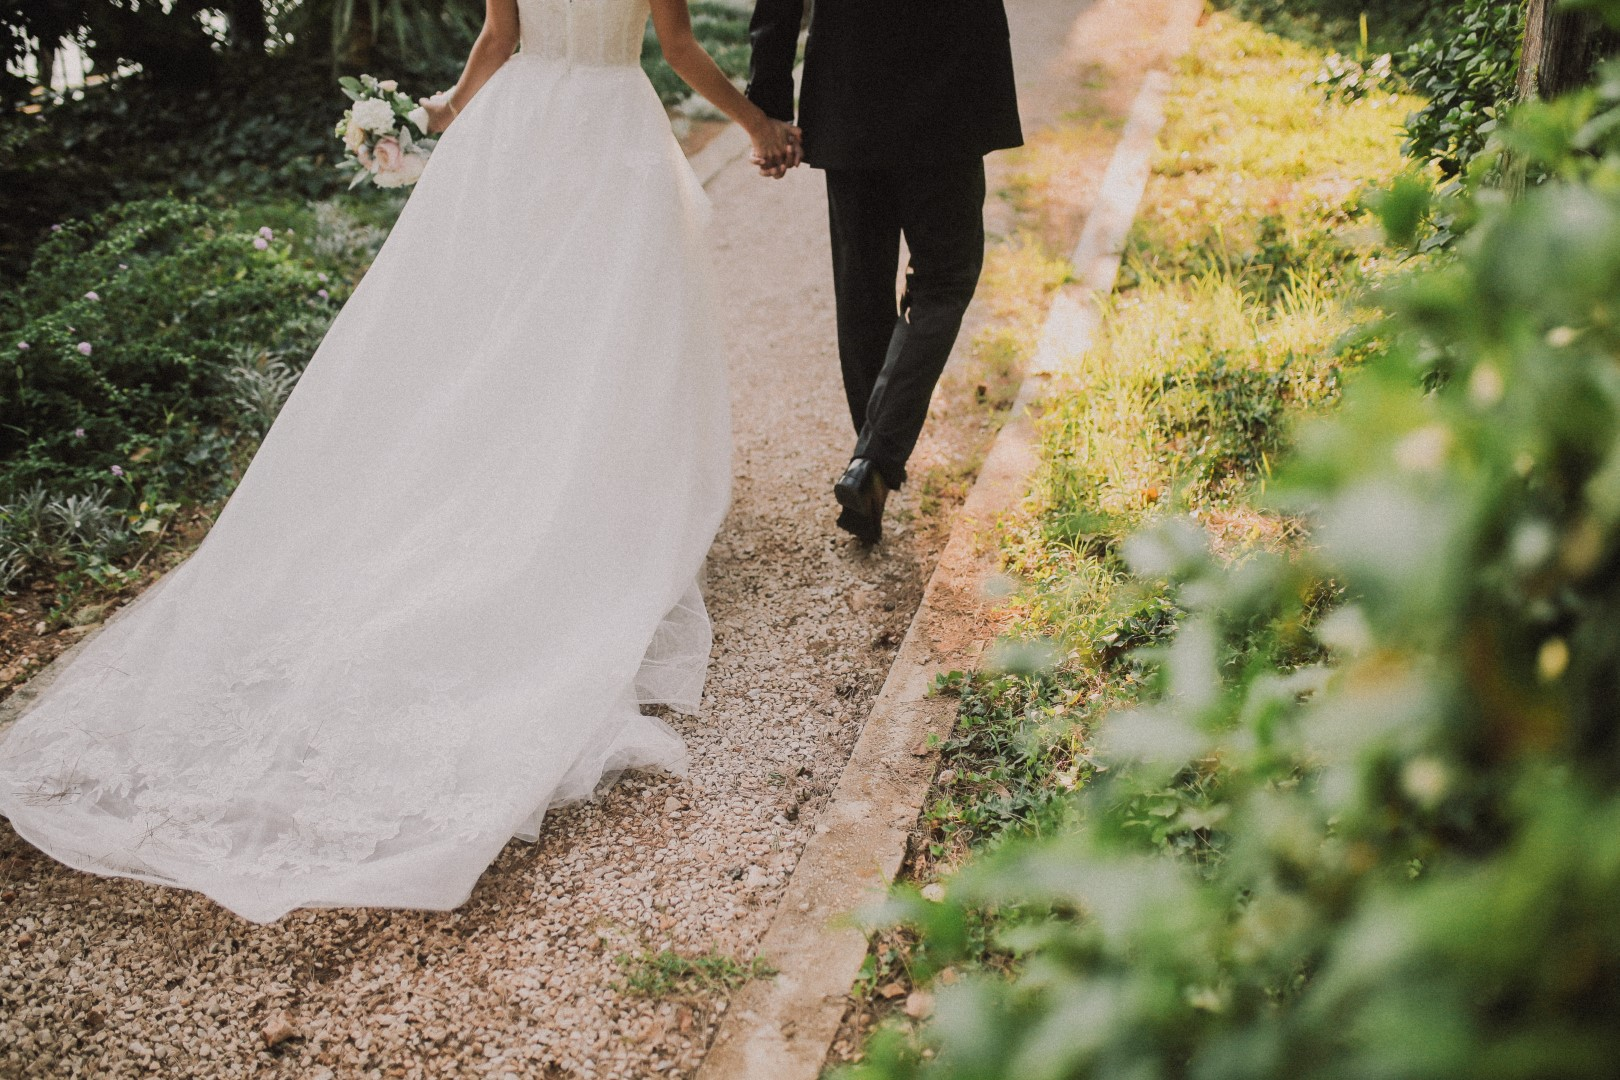 This is a photo from the photosession of the happy couple. They are in a garden. You can only see their legs, her beautiful long dress and his black suit.